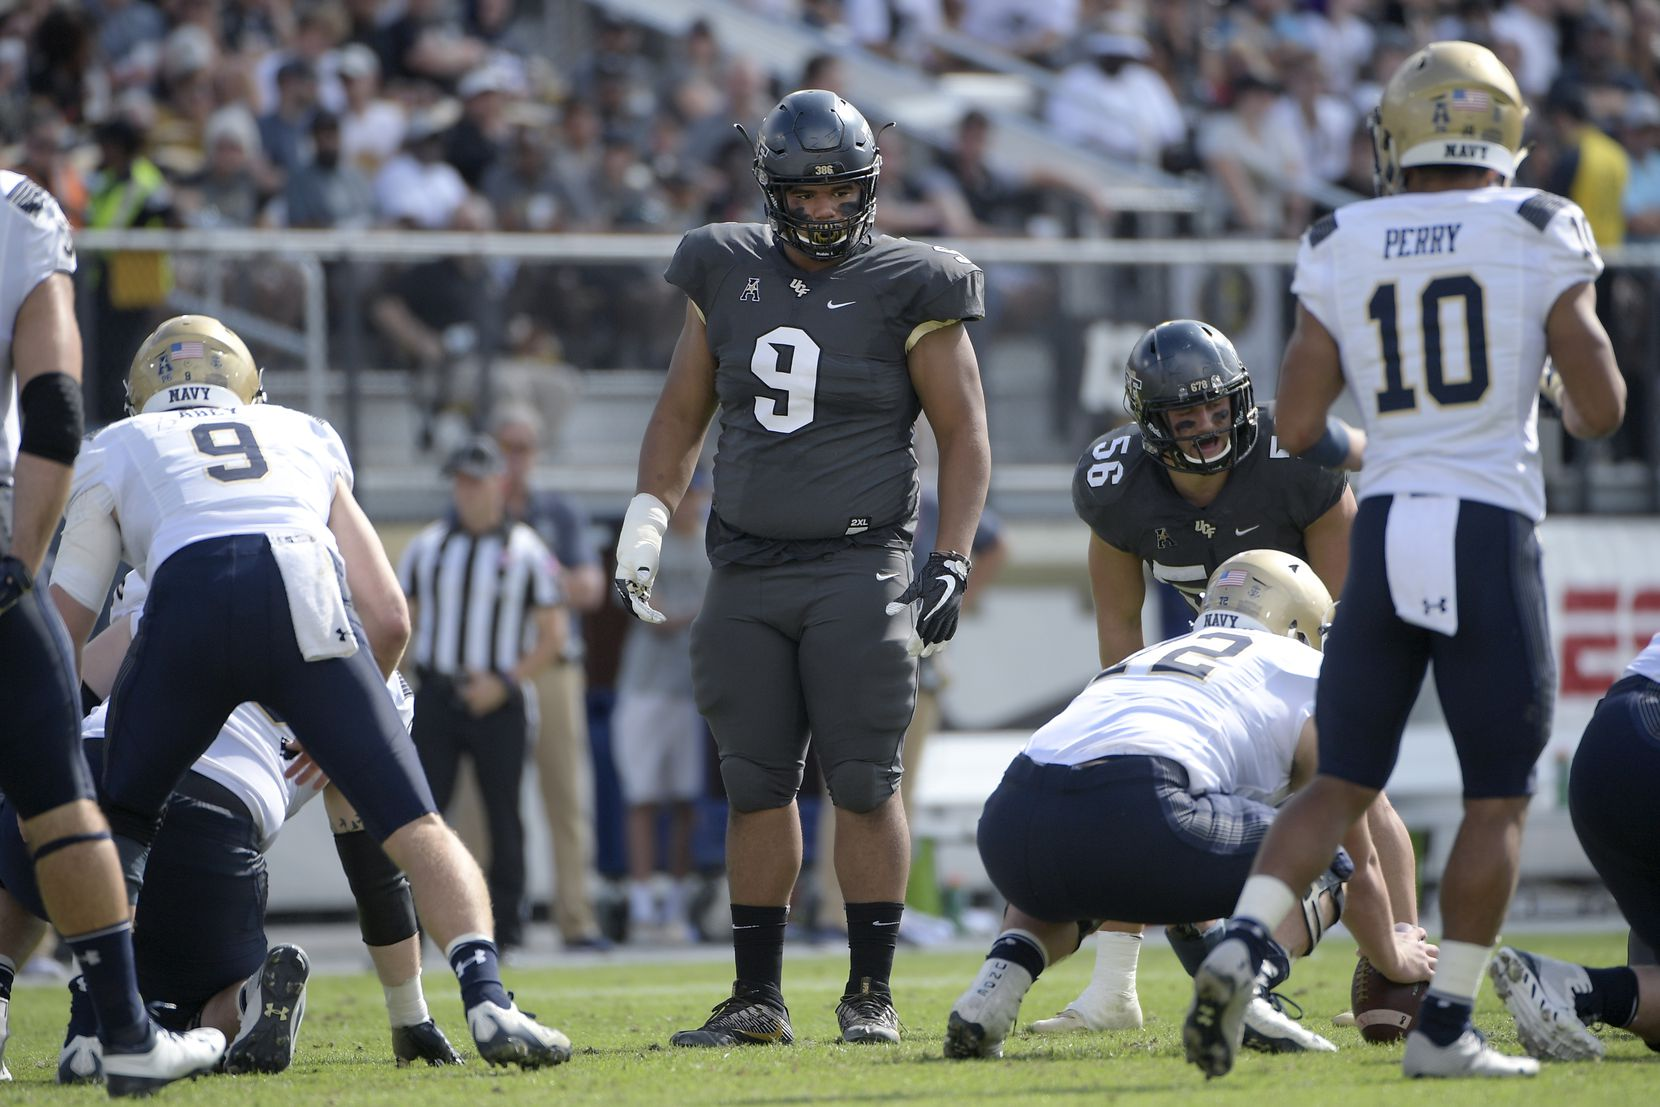 Central Florida defensive lineman Trysten Hill (9) sets up for a play during the first half of an NCAA college football game against Navy Saturday, Nov. 10, 2018, in Orlando, Fla. (AP Photo/Phelan M. Ebenhack)